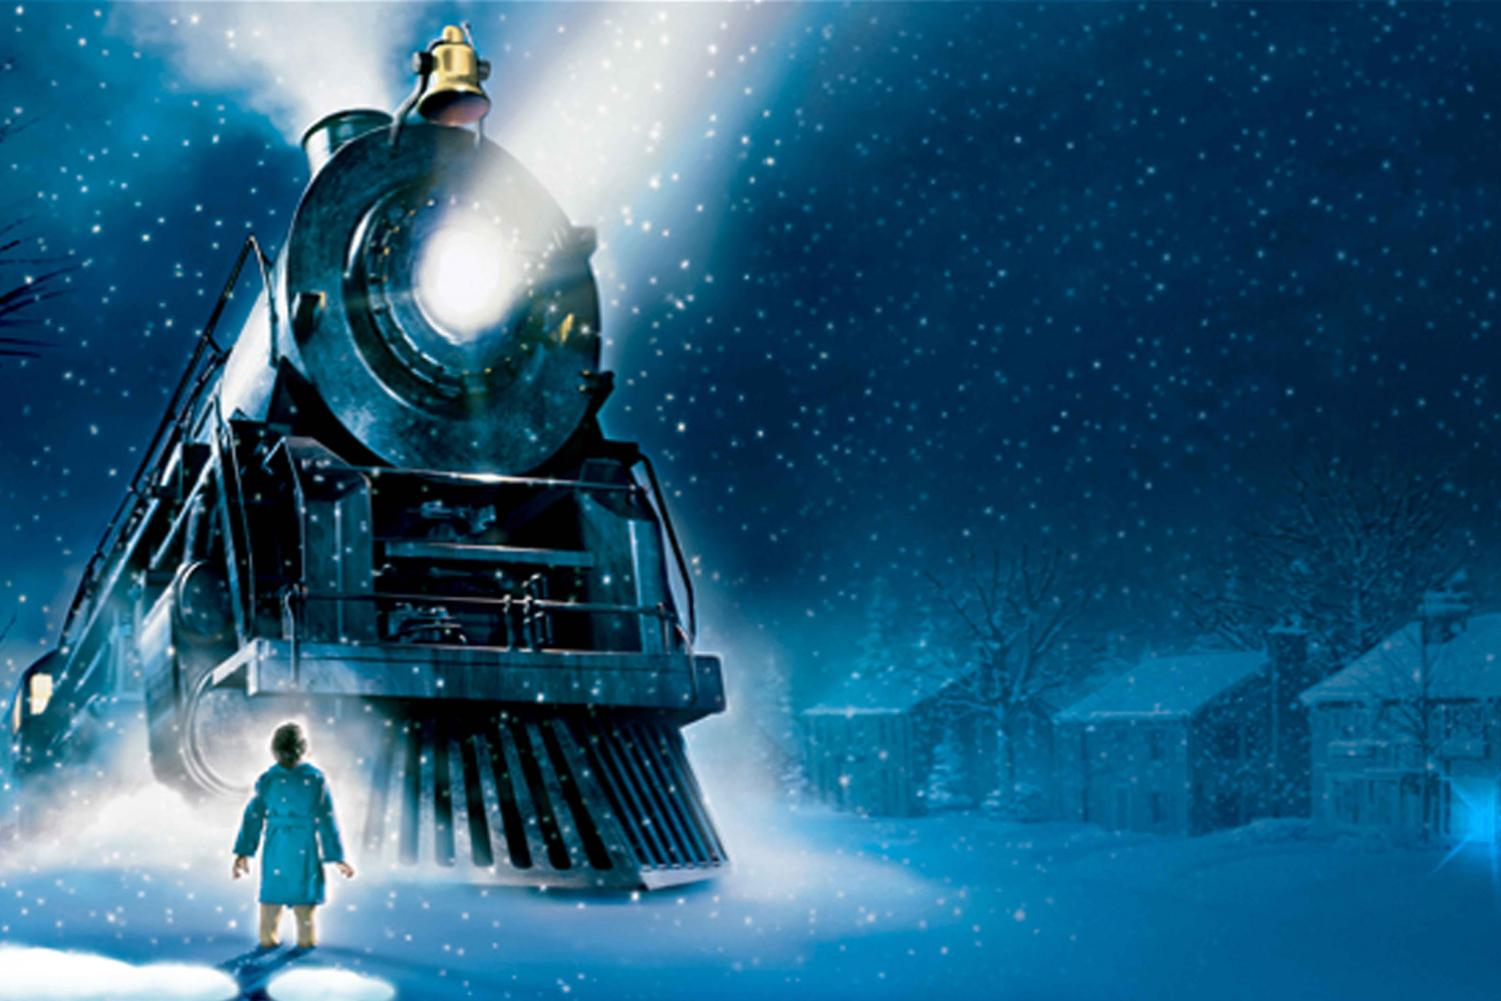 Polar Express. Photo Cred: Warner Bros